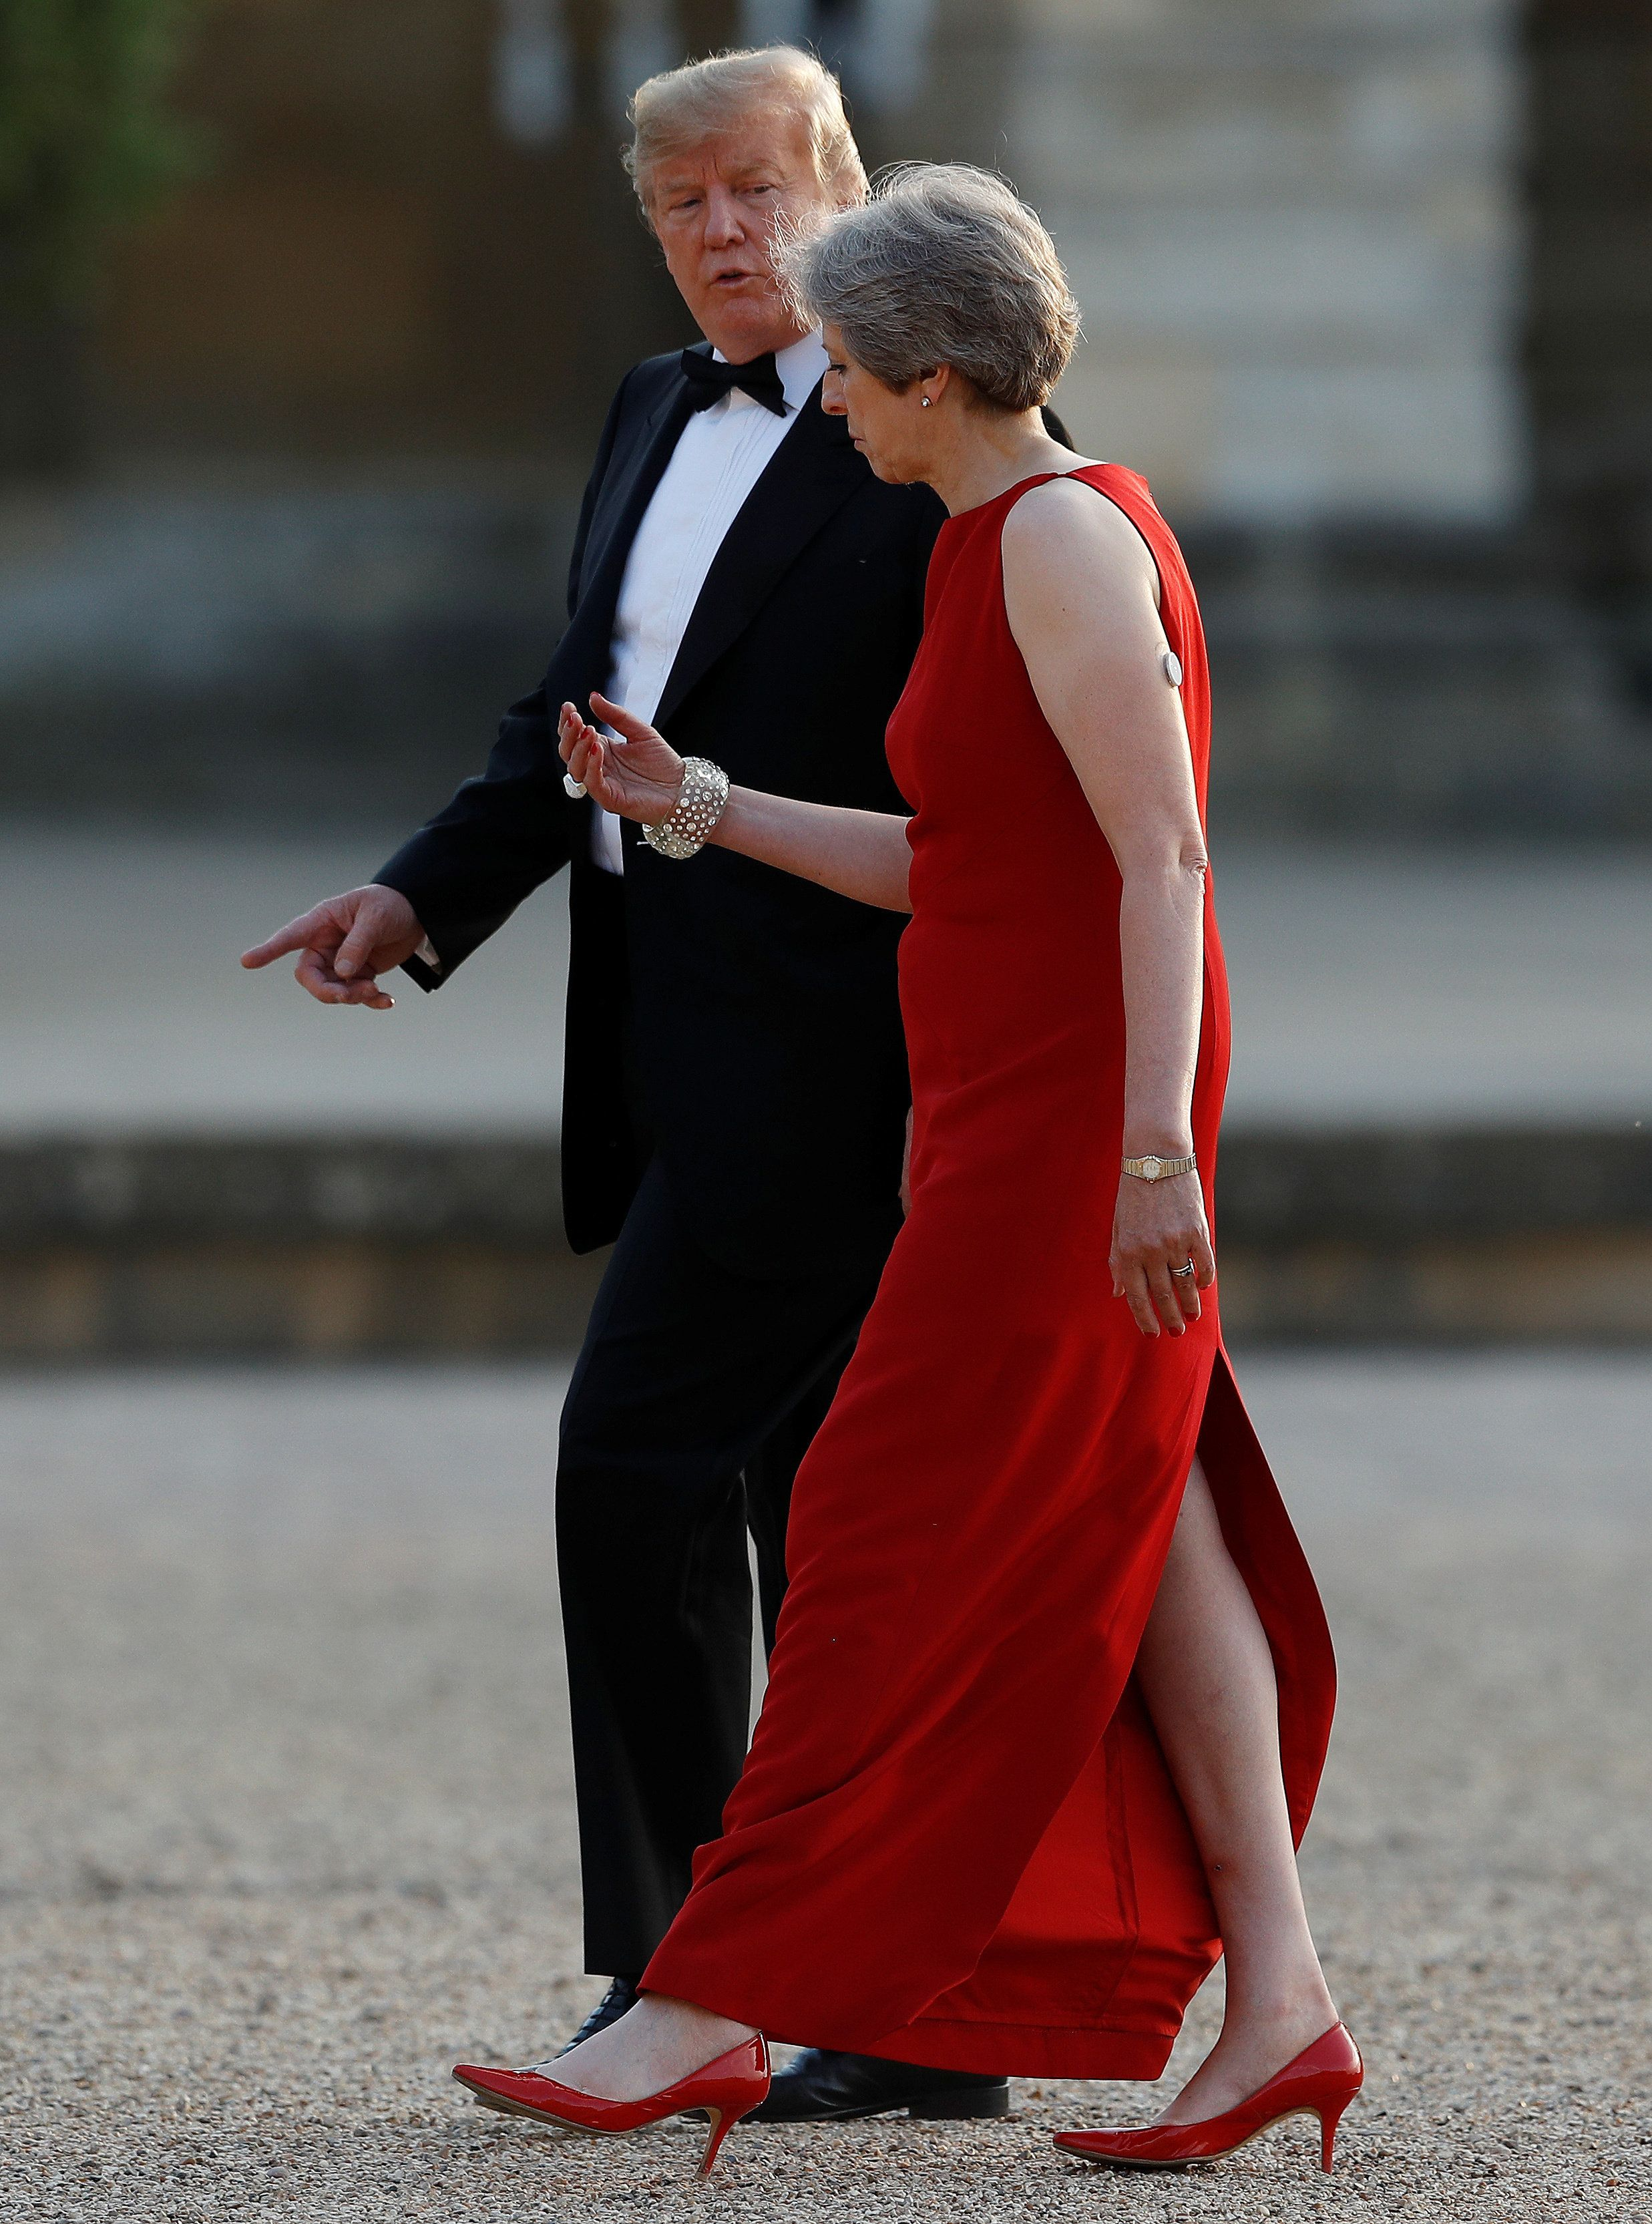 What Was On Theresa May's Arm At Blenheim